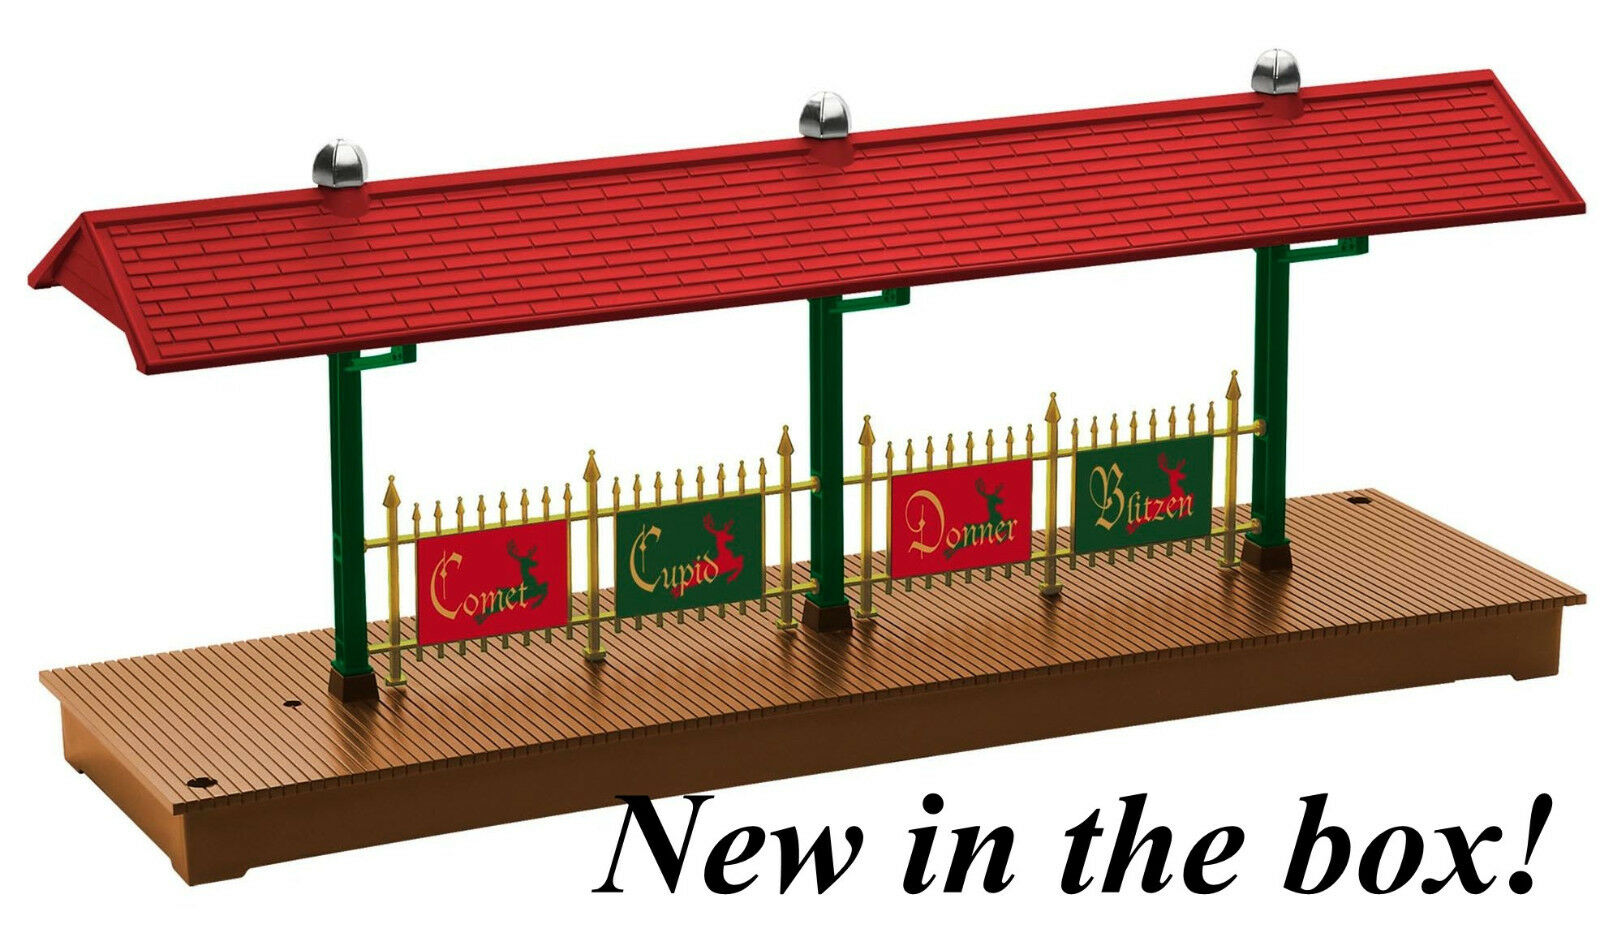 LIONEL Christmas Station Platform o gauge train NOT lighted 6-82743 NIB NR alt